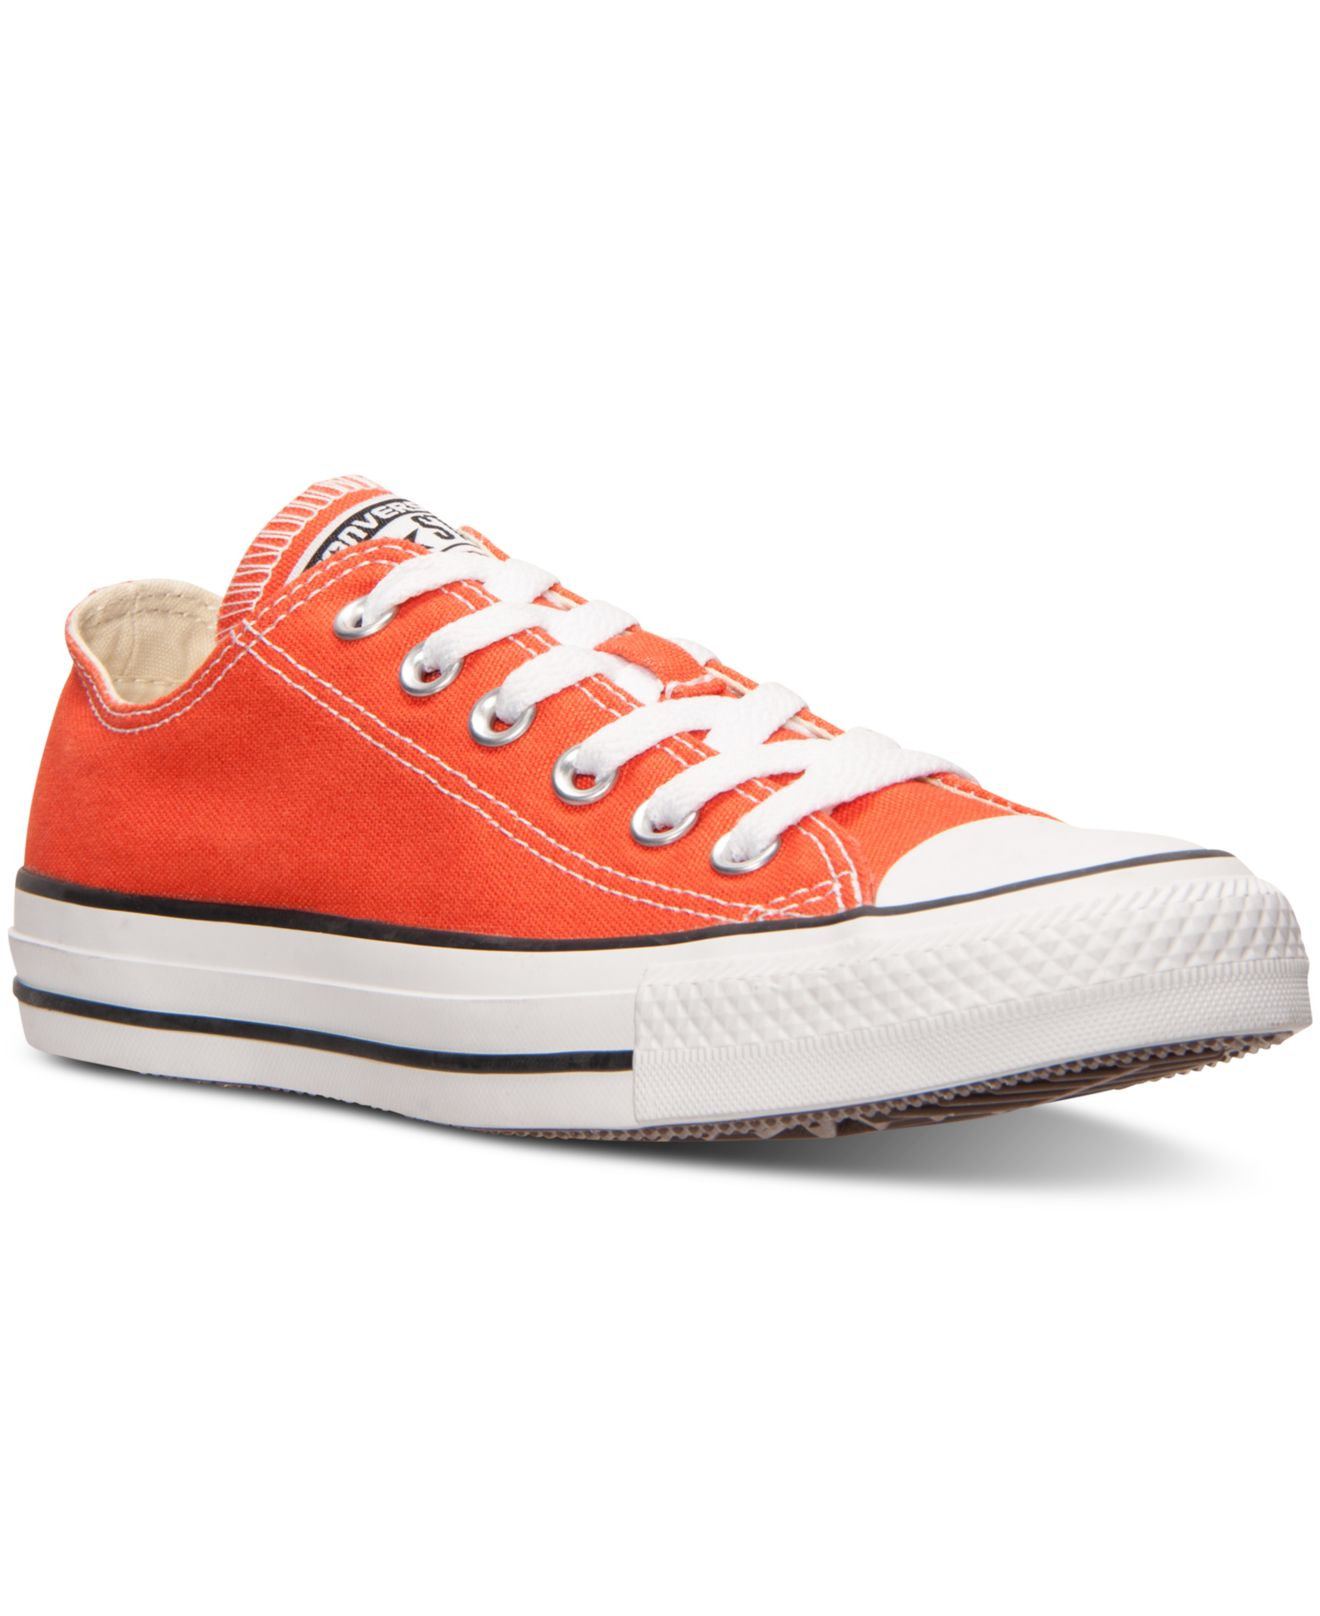 4d04e51a222b25 Lyst - Converse Women s Chuck Taylor Ox Casual Sneakers From Finish ...